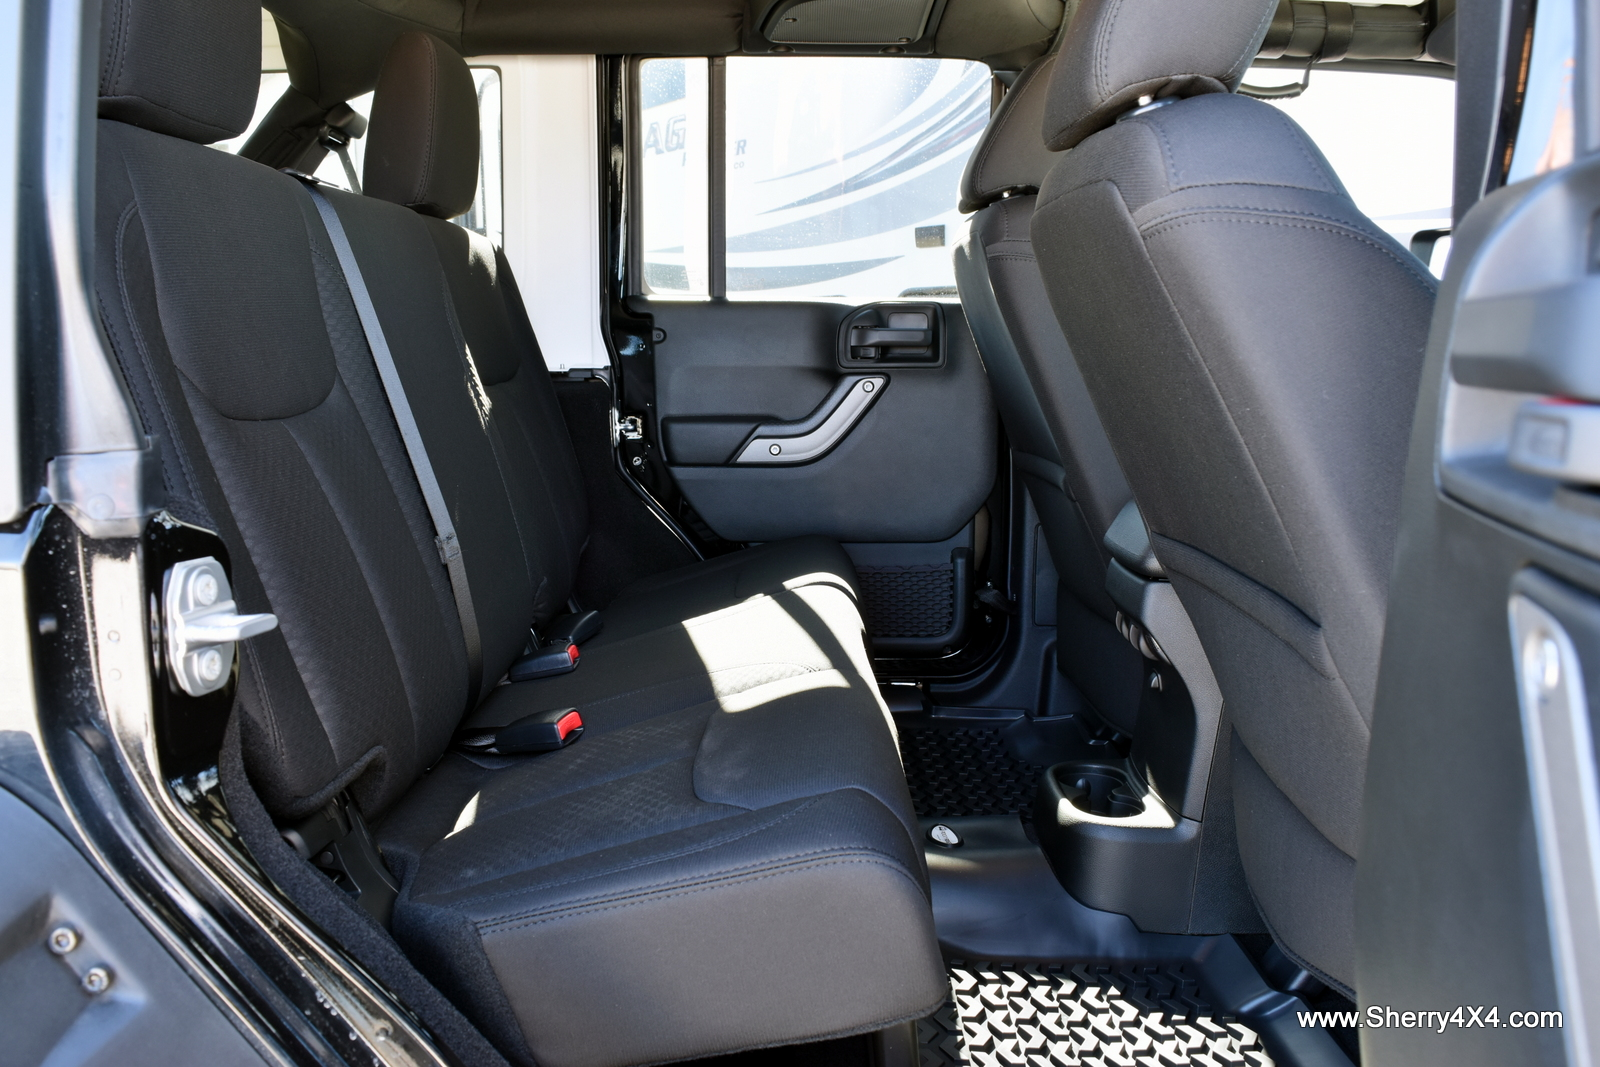 3 car seats in jeep wrangler unlimited cars image 2018. Black Bedroom Furniture Sets. Home Design Ideas